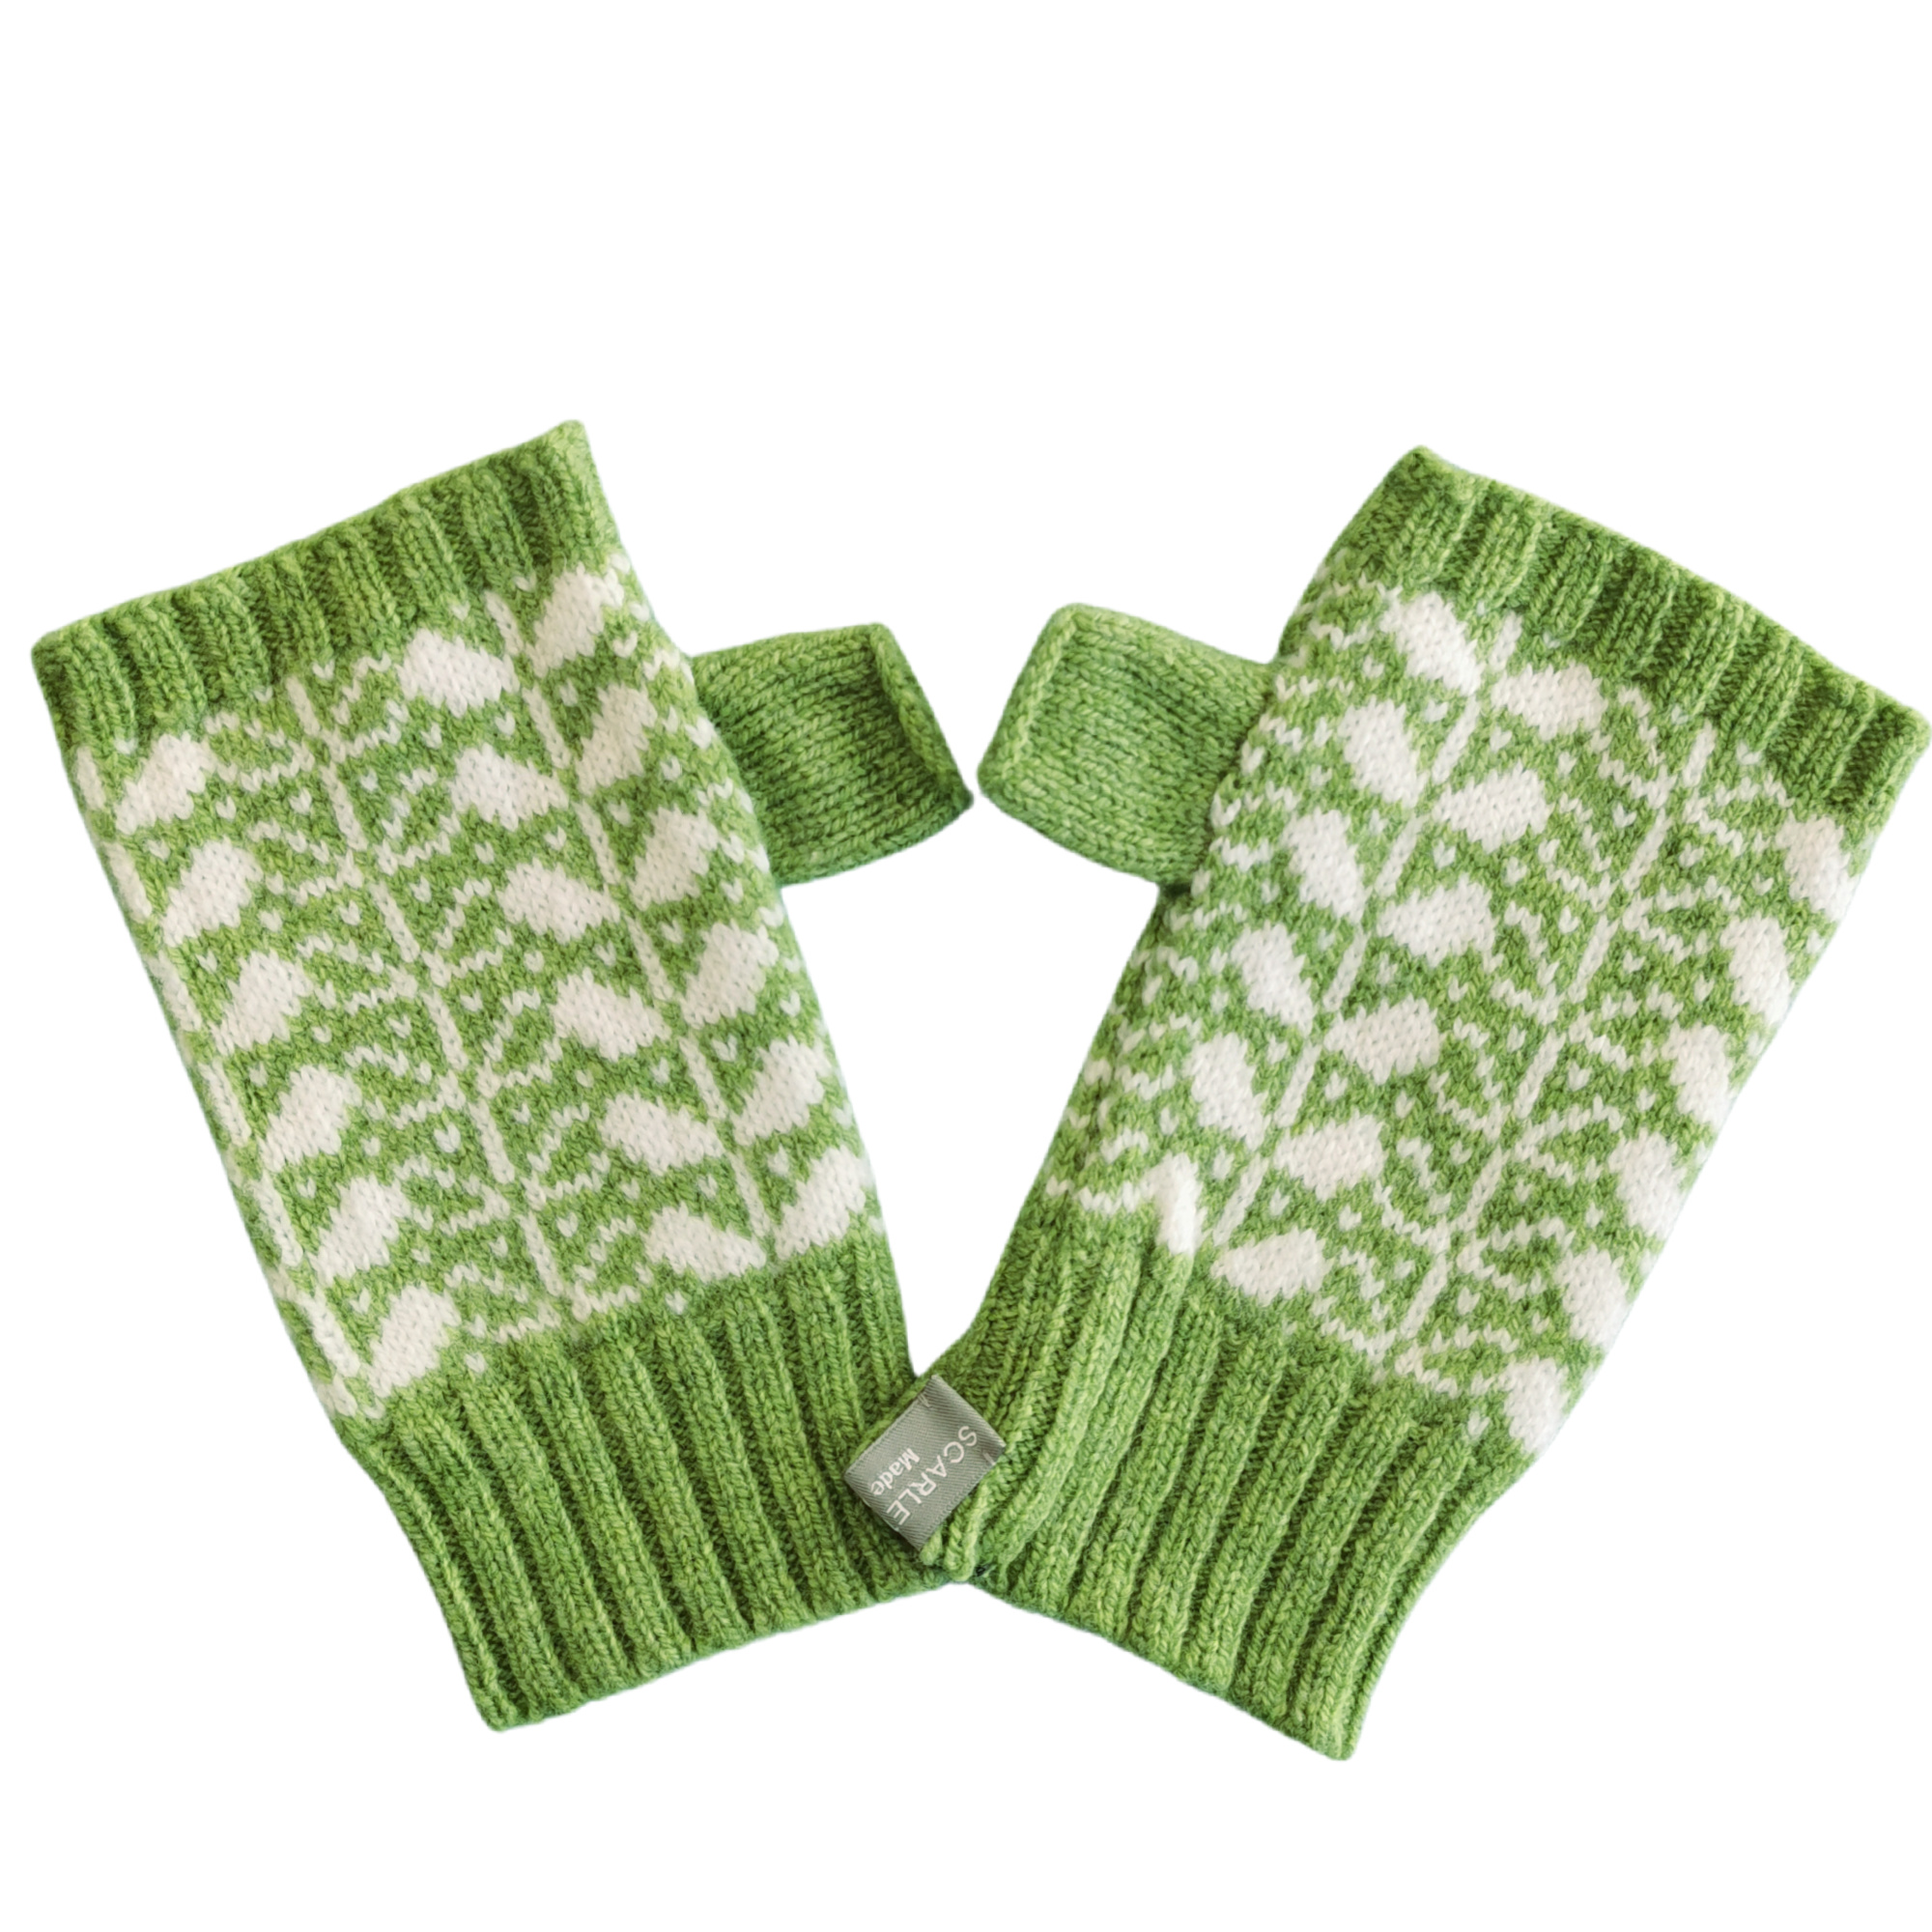 Leaf Design Fingerless Gloves by Scarlet Knitwear